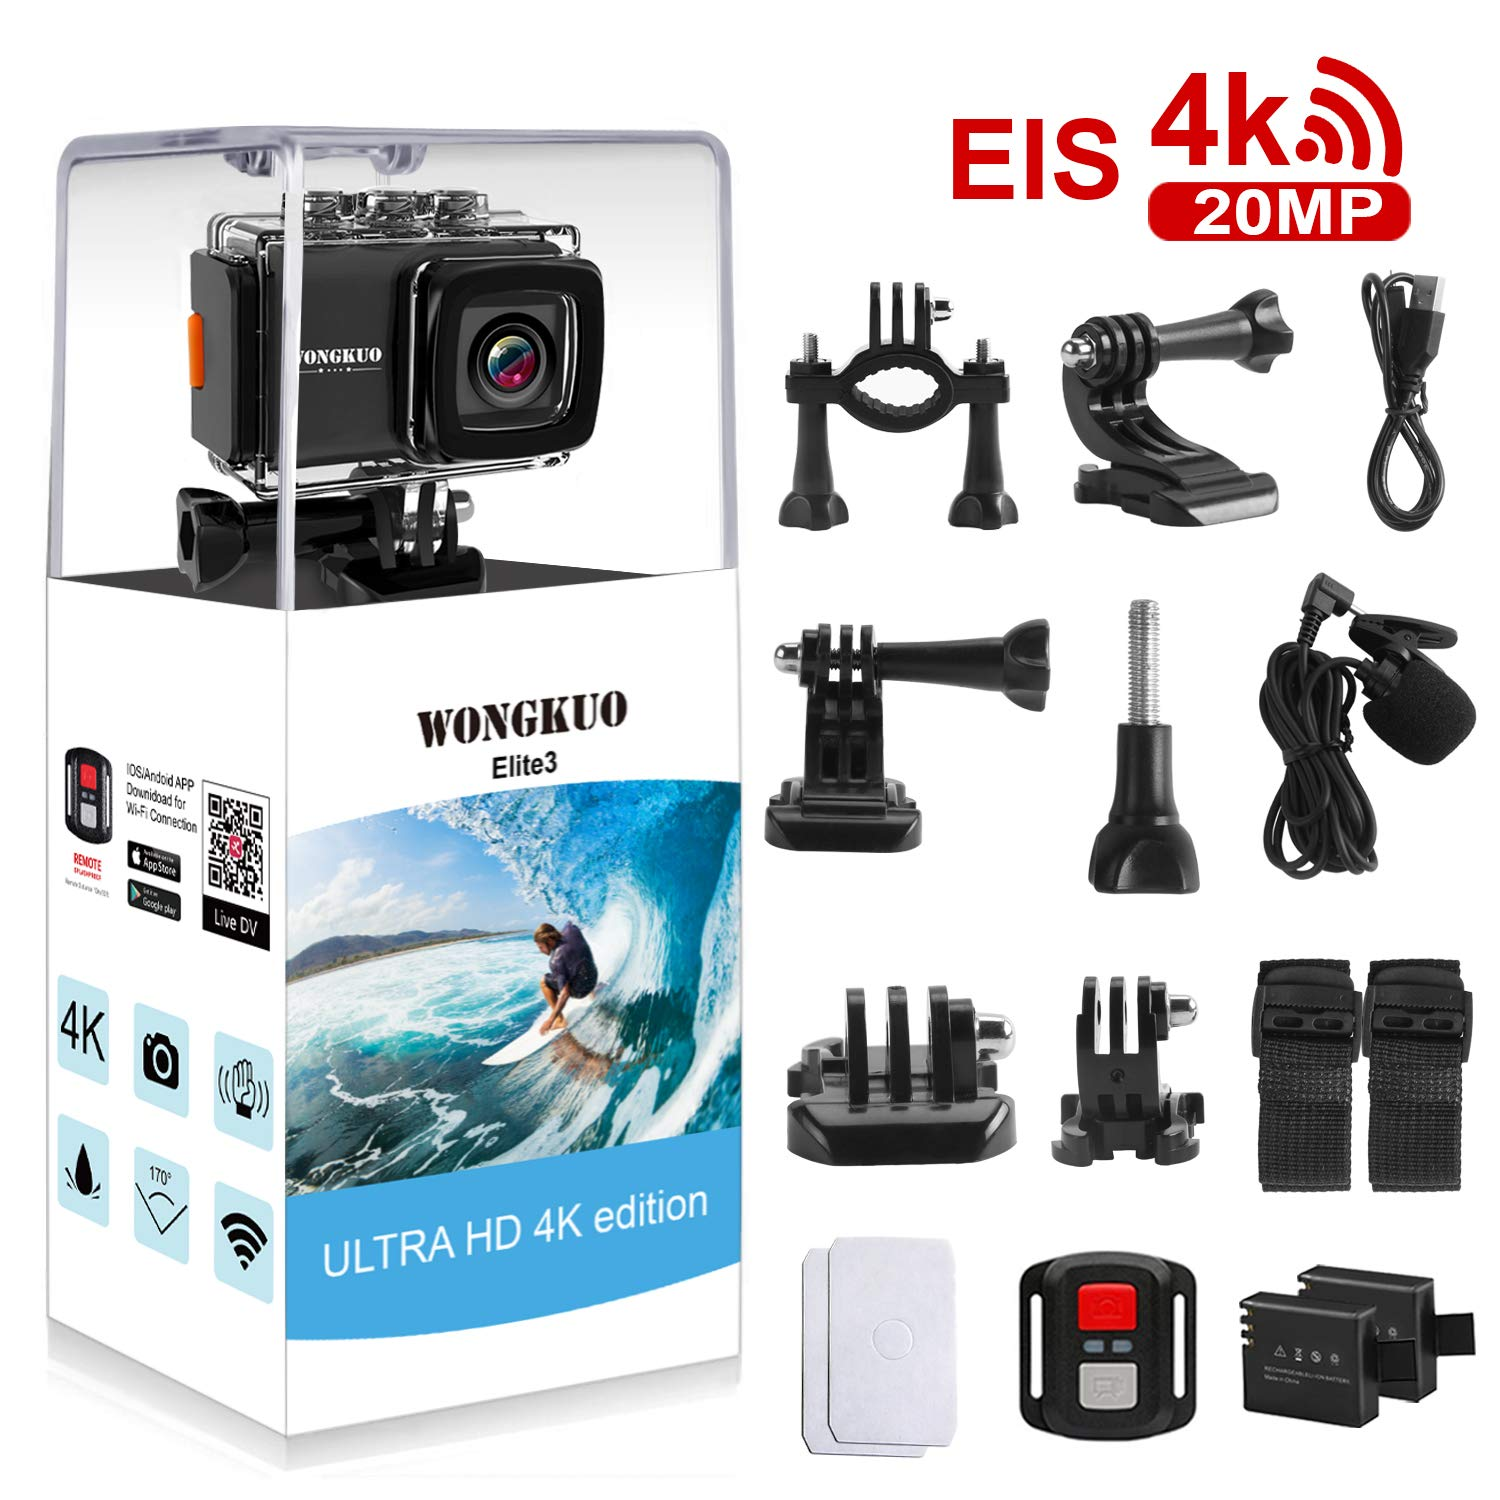 UPGRADED WONGKUO Action Camera 4K 20MP Ultra HD EIS Anti-shake Sport Camera 98ft Waterproof 170°Wide-Angle WiFi Camcorder with External Microphone & Remote Control & Mounting Accessories Kit(Standard) by WONGKUO